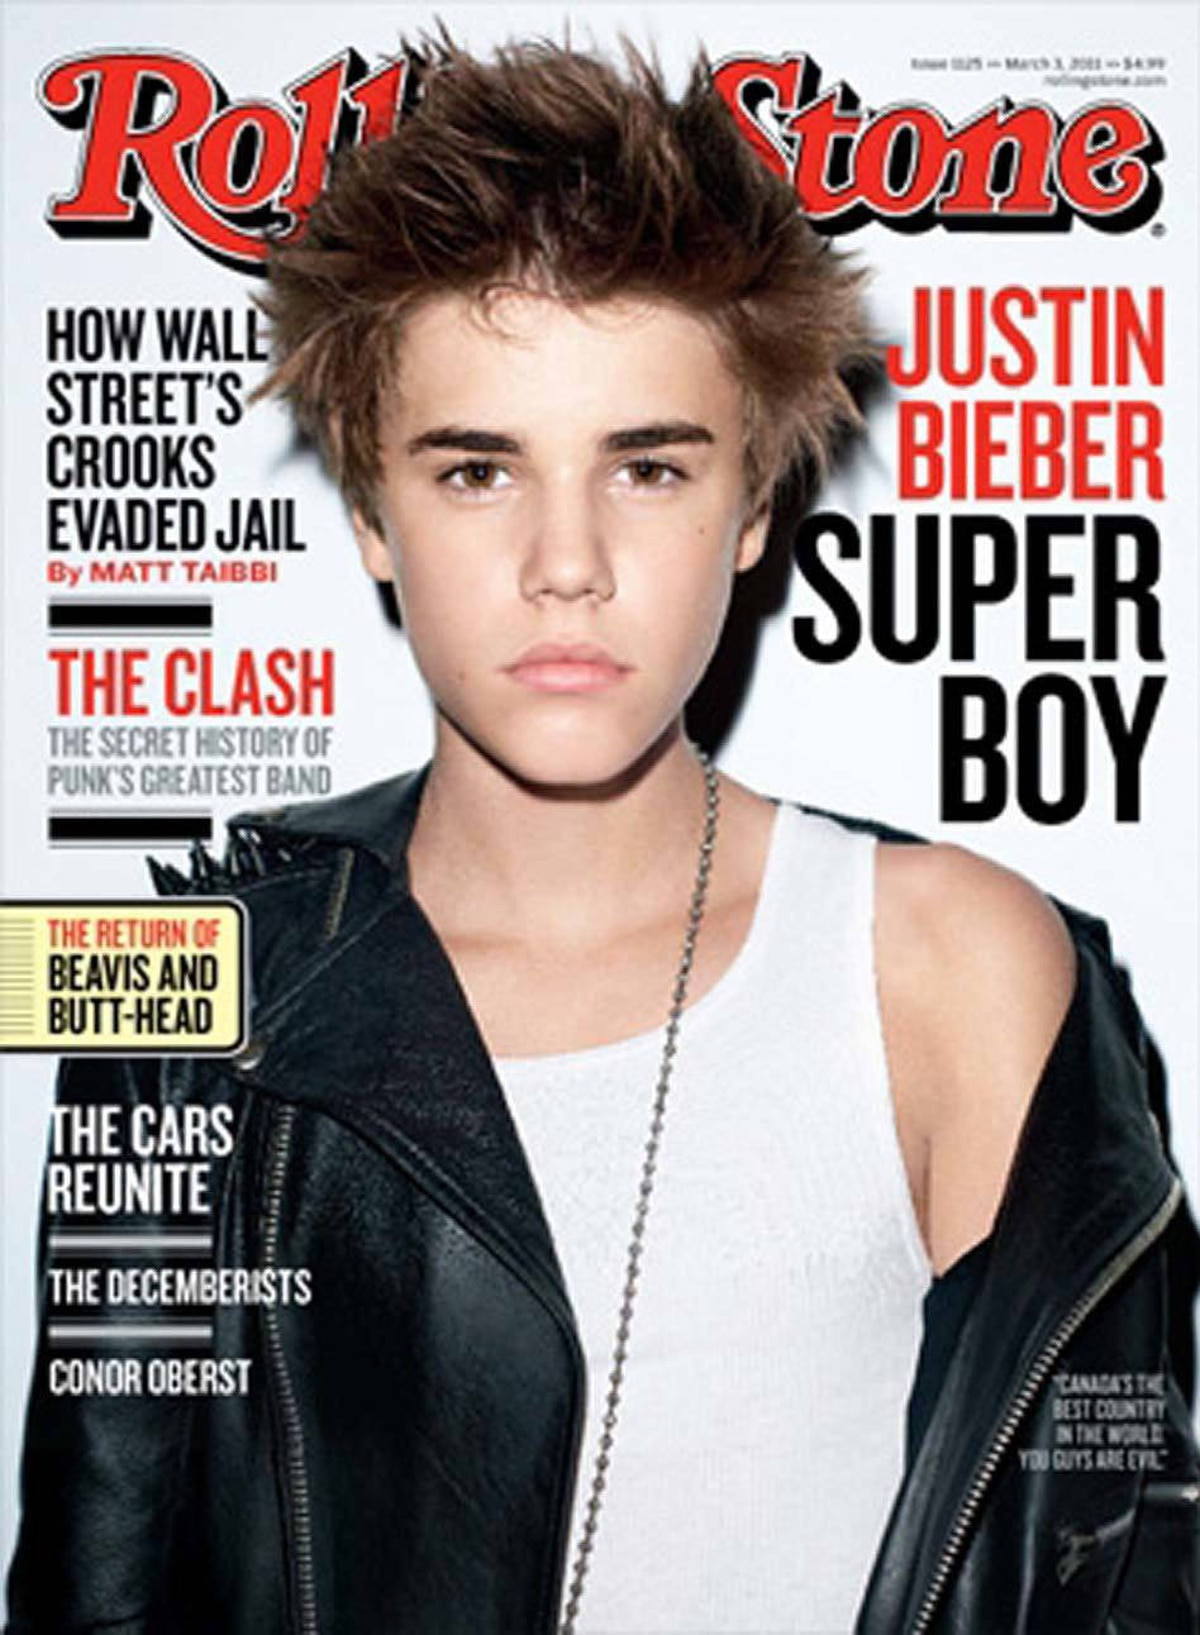 Then he made the March 3rd cover of Rolling Stone magazine, which also came out in early February.